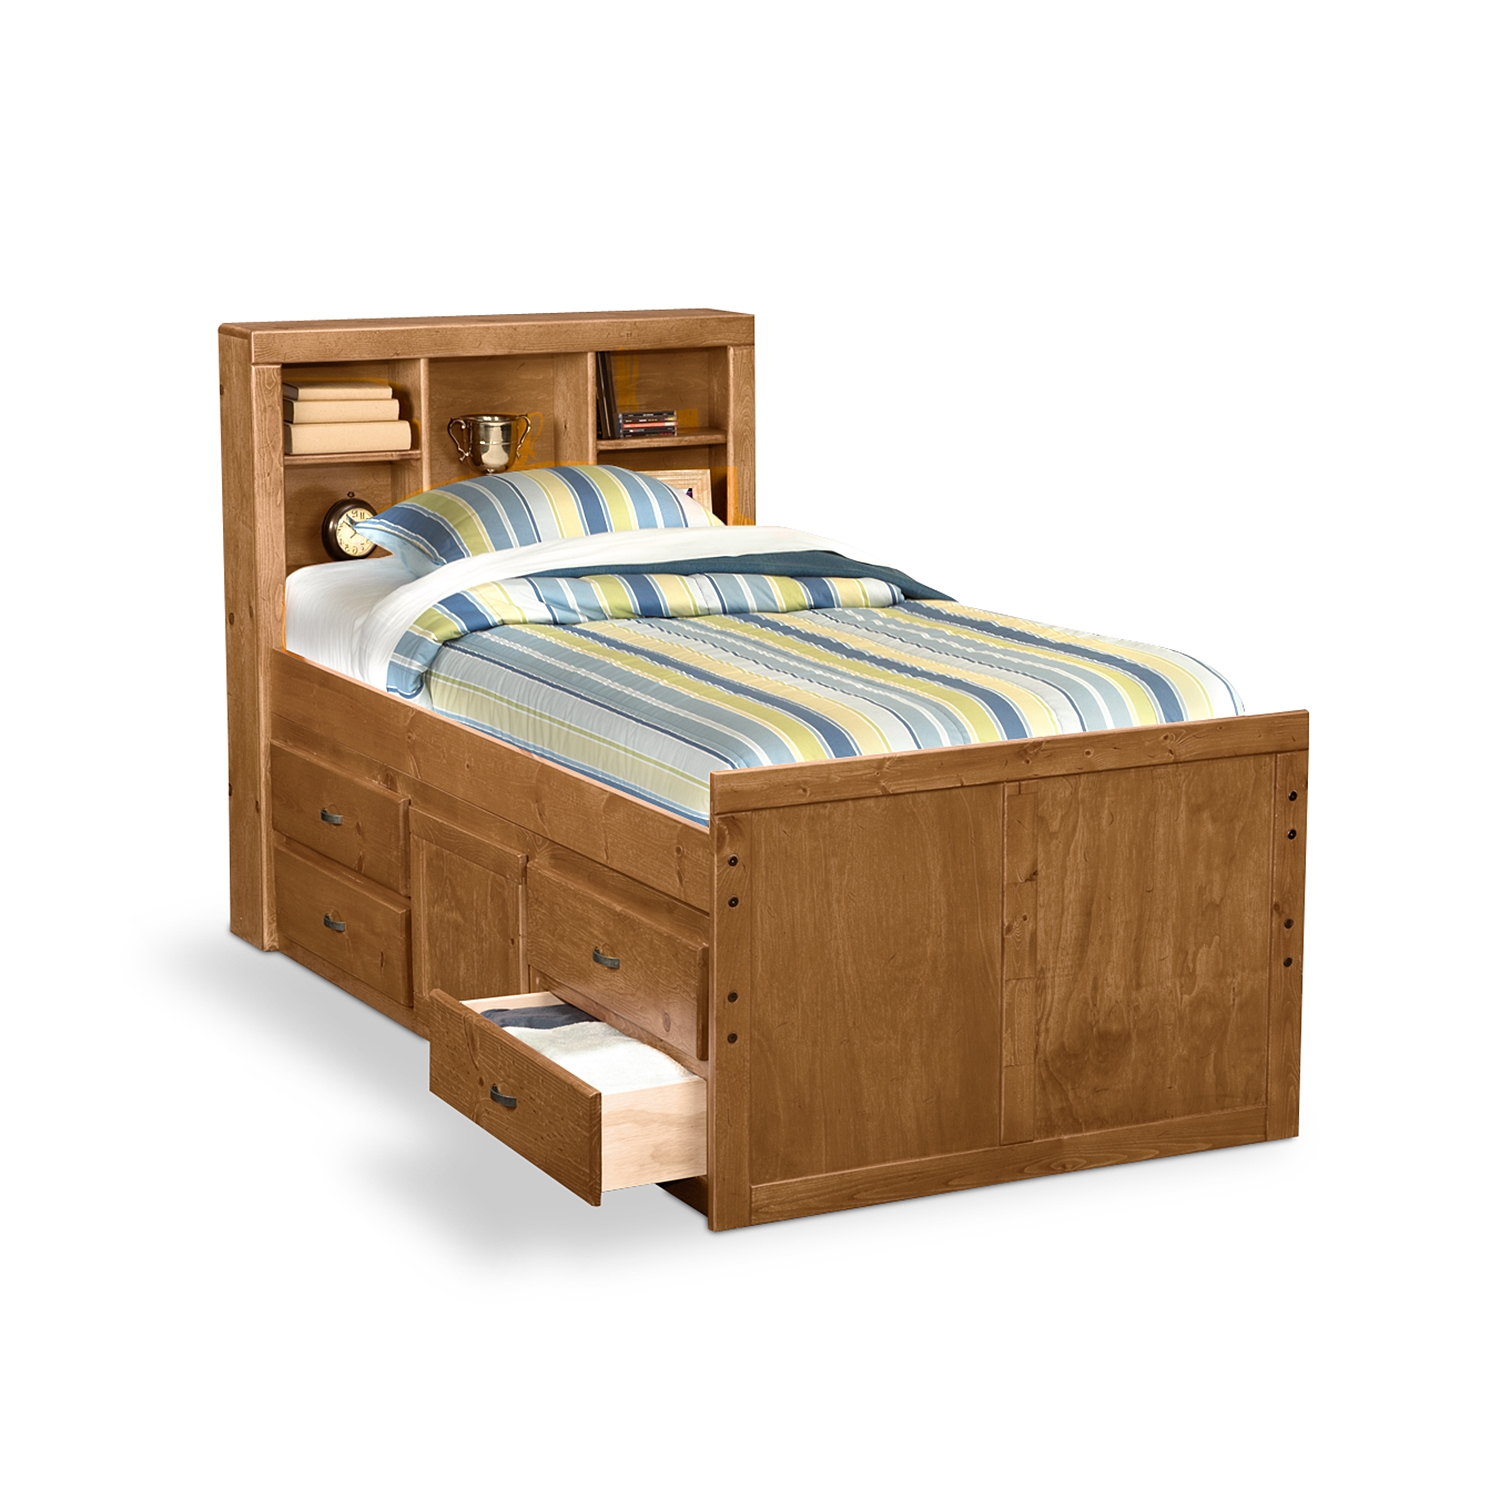 Wooden Beds With Storage ~ Beds with drawers underneath homesfeed